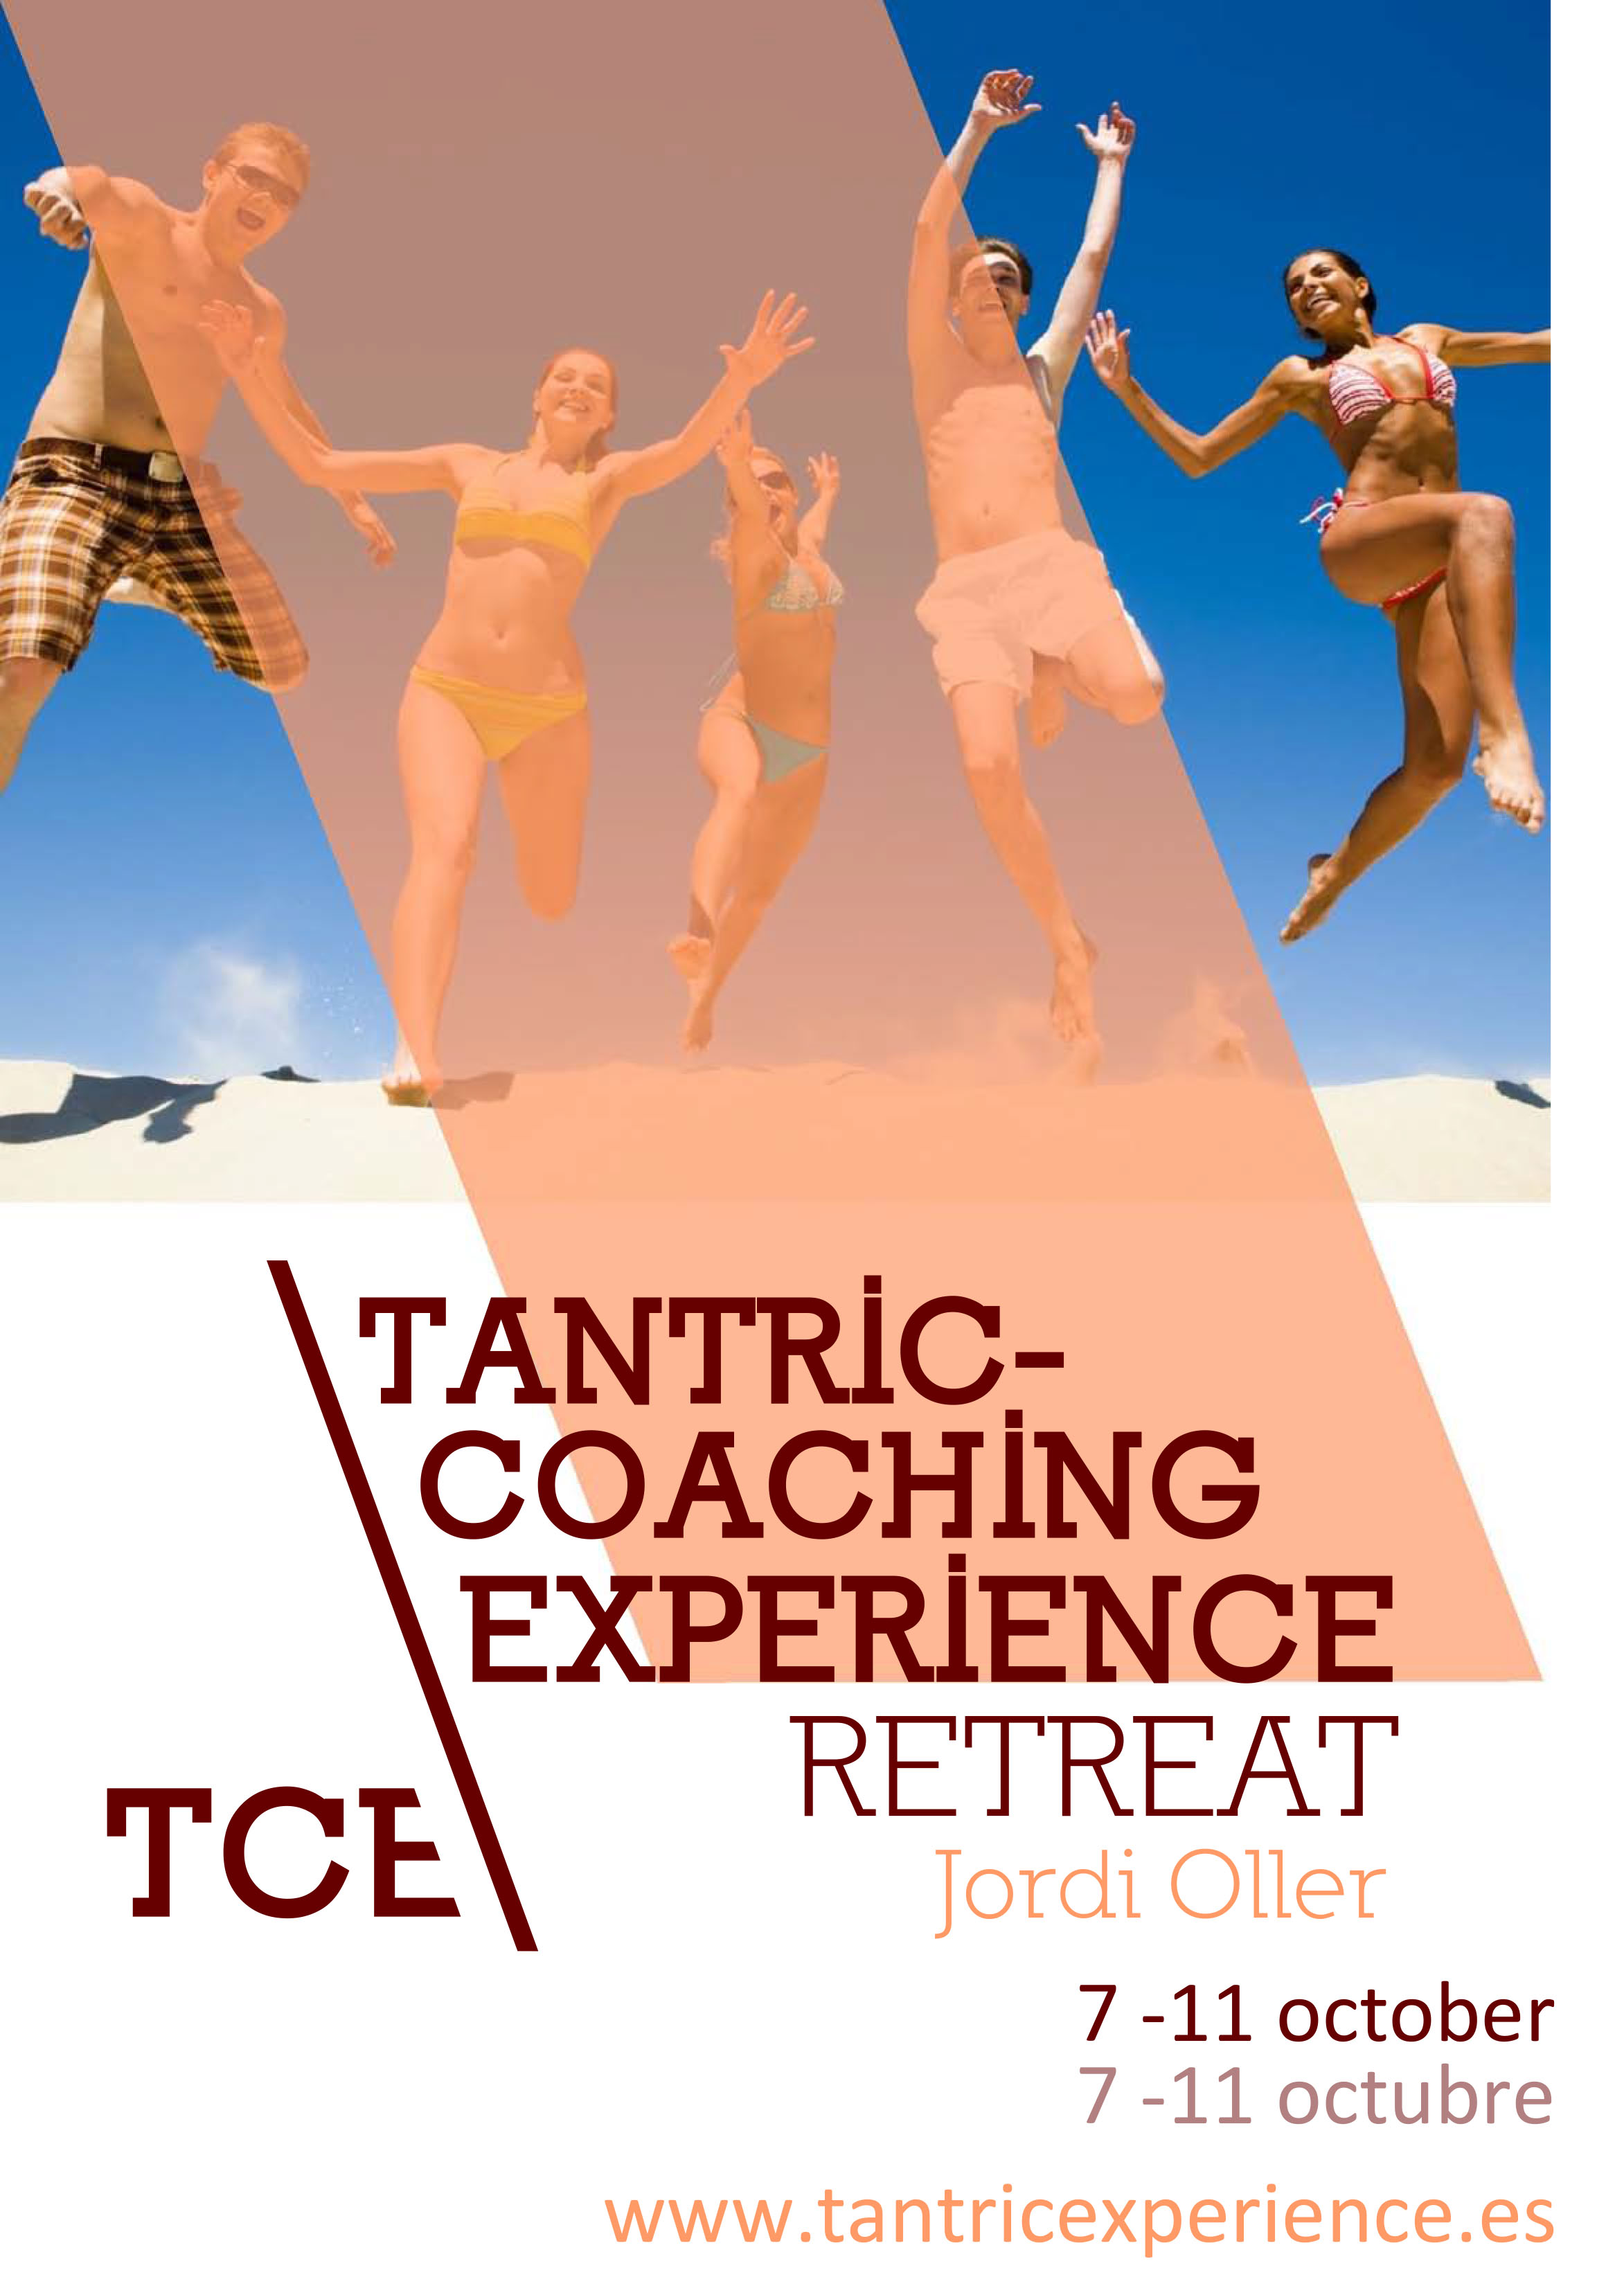 EVENTO TANTRIC-COACHING